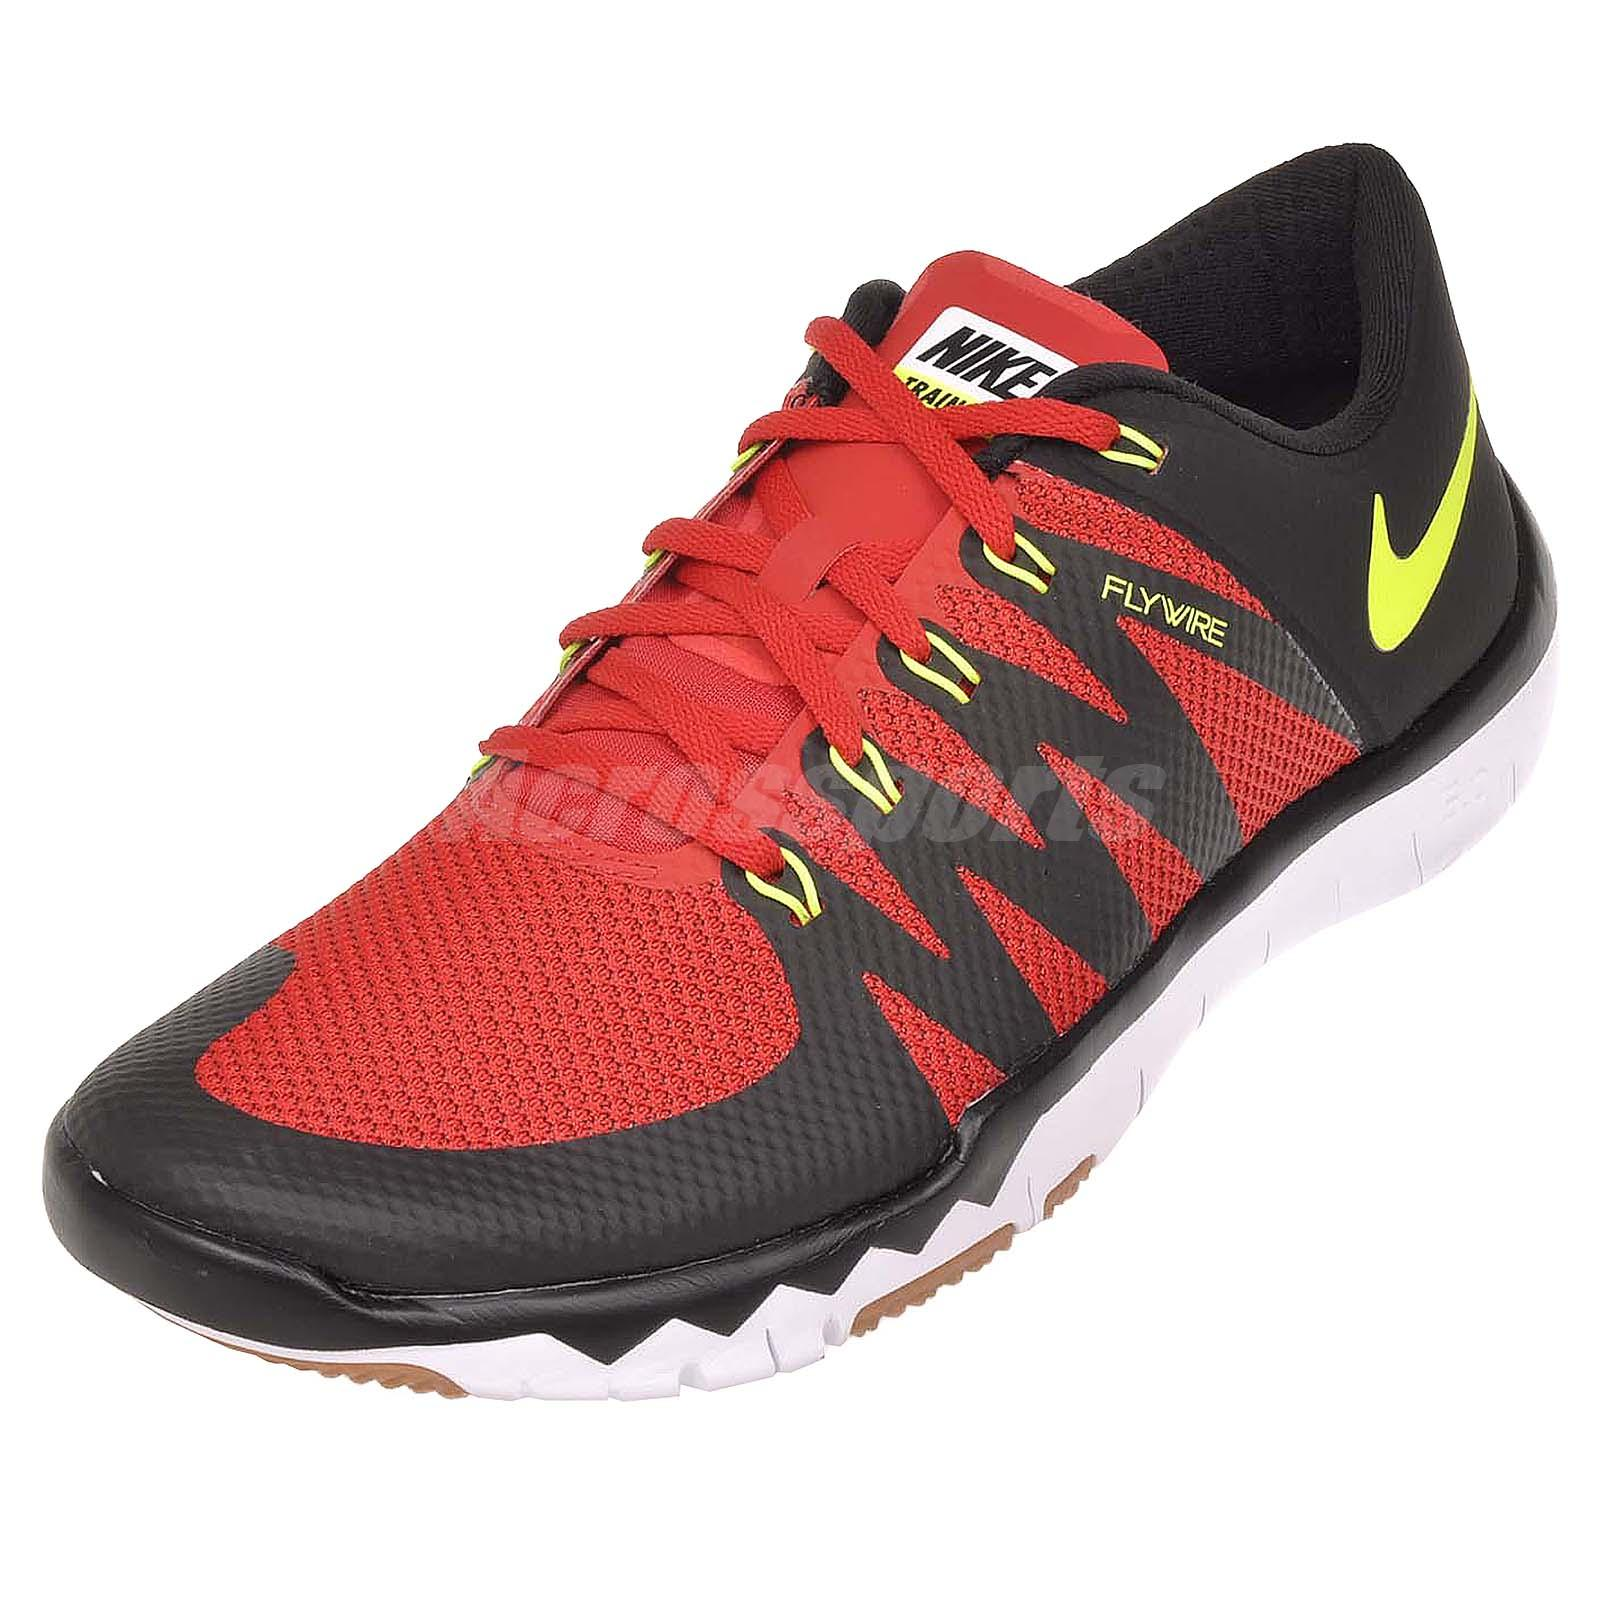 Cross Country Running Shoes Amazon